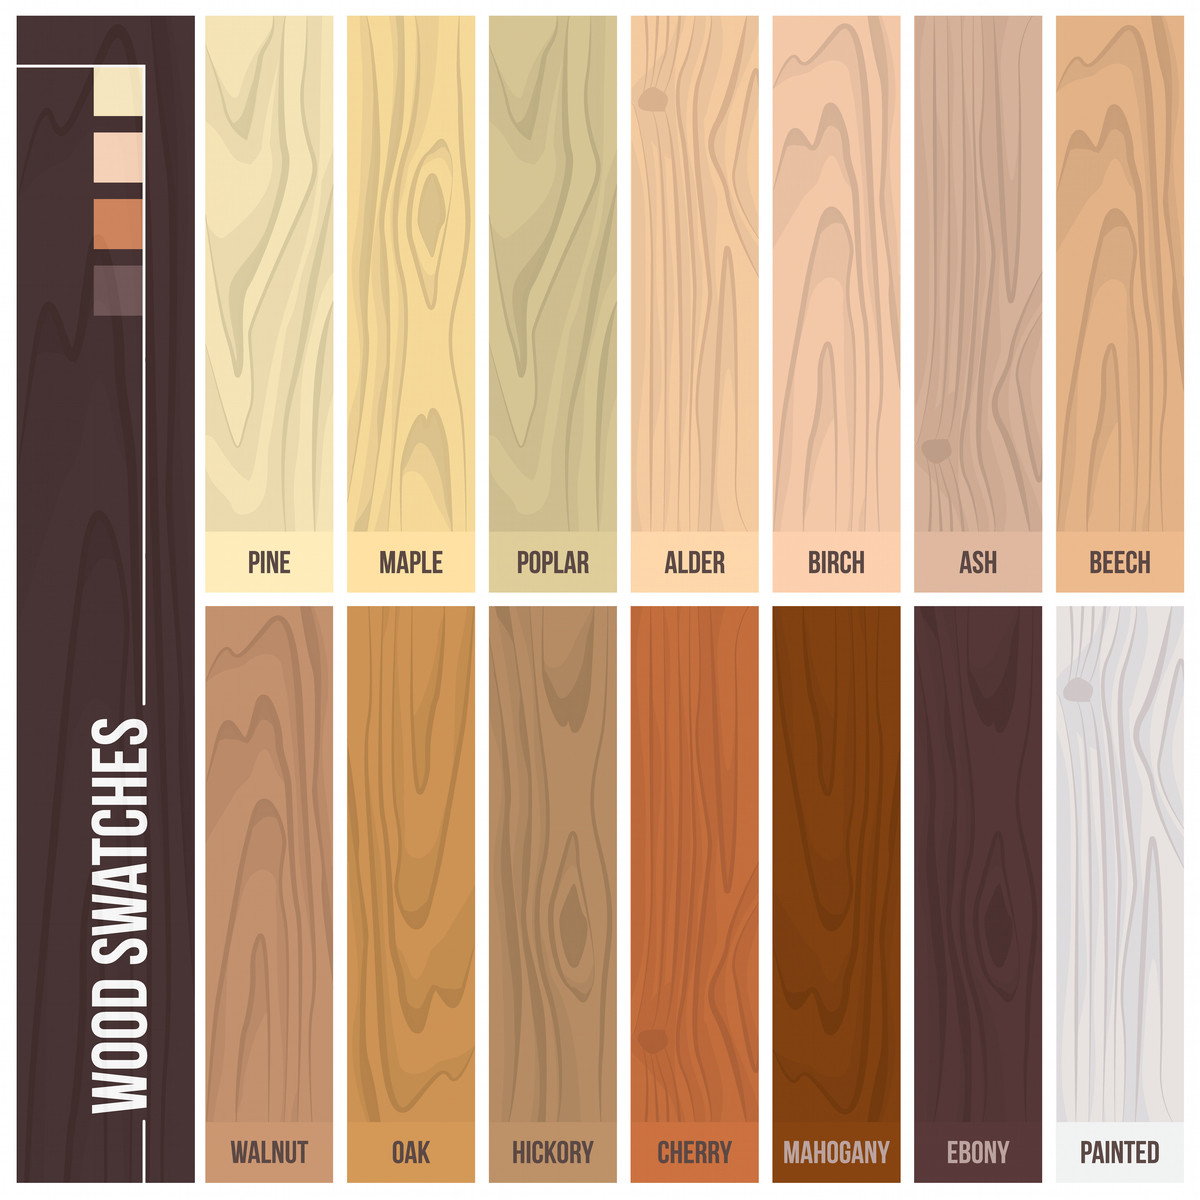 high janka rating hardwood flooring of 12 types of hardwood flooring species styles edging dimensions intended for types of hardwood flooring illustrated guide